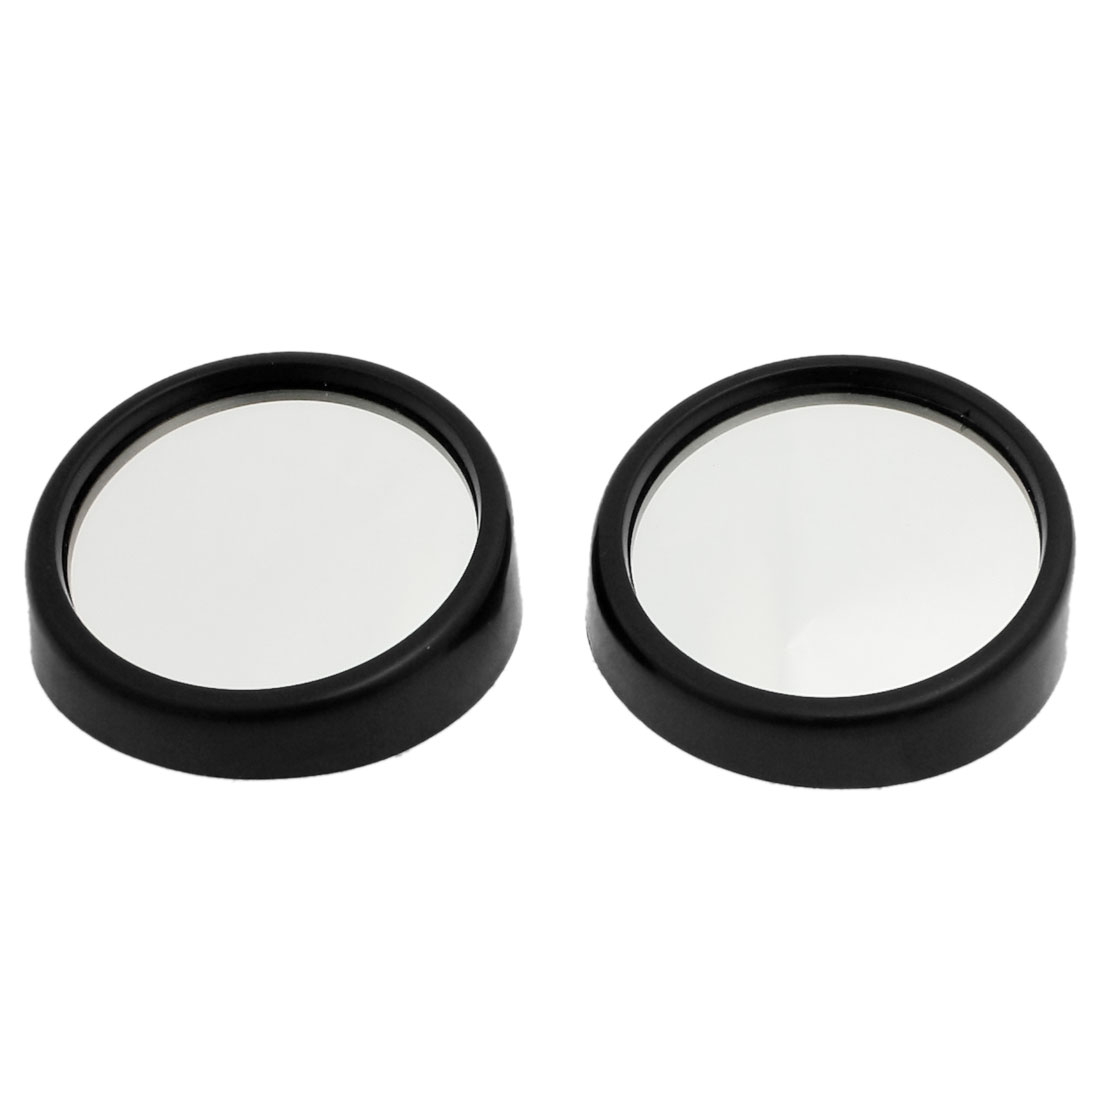 2 Pcs Black Wide Angle Car Truck Rear View Blind Spot Mirror 2.2""